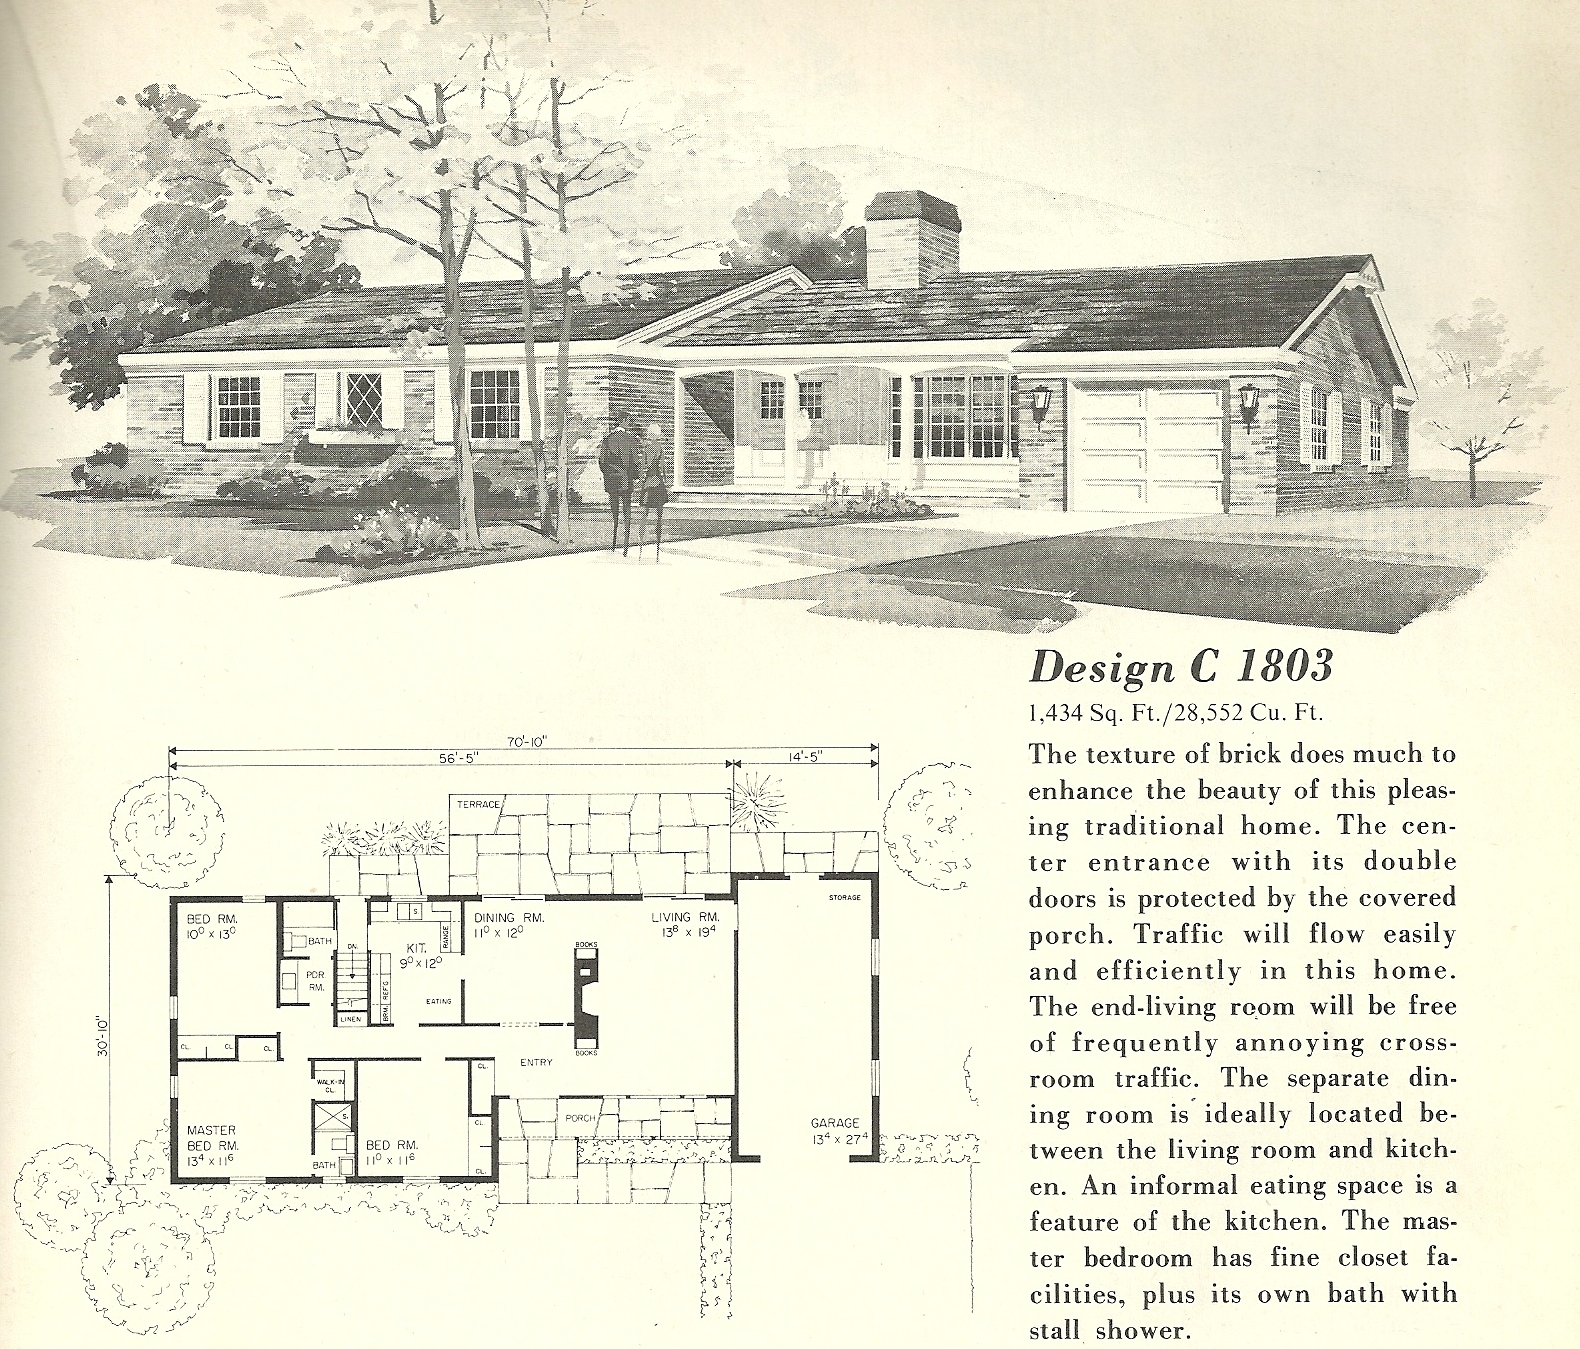 Vintage house plans 1803 antique alter ego for Vintage home plans